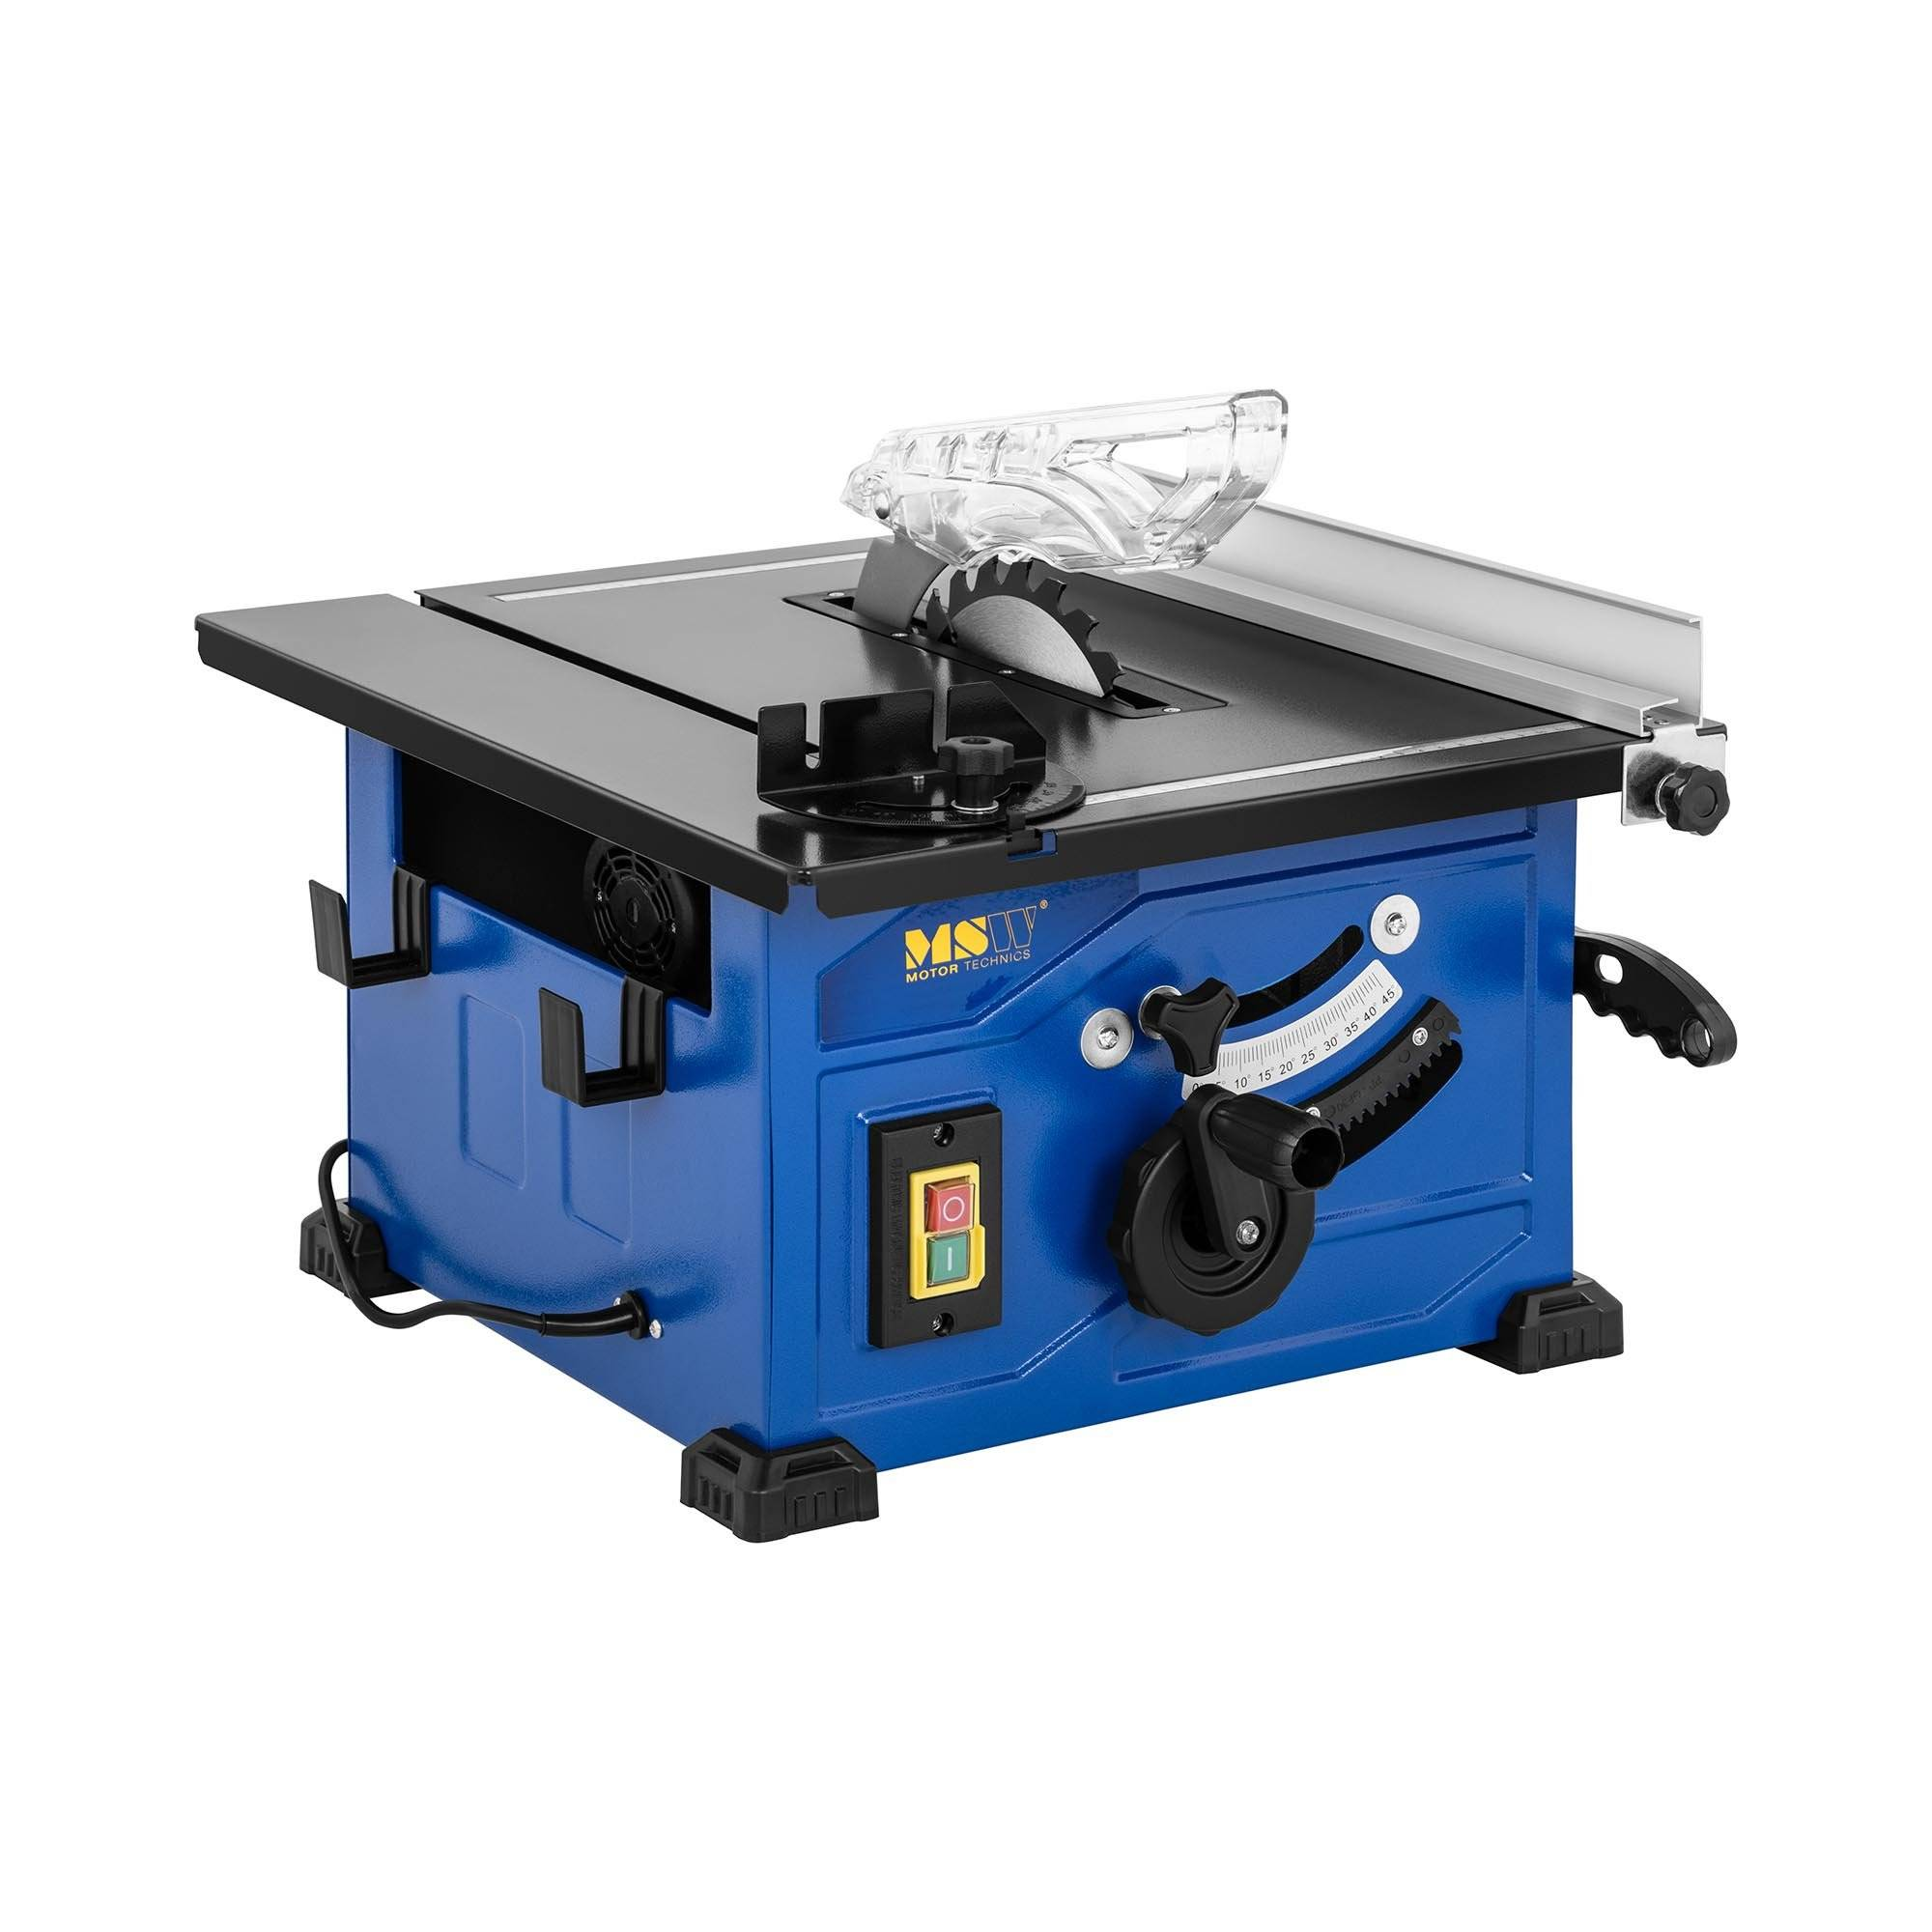 MSW Scie circulaire sur table - 900 W - 4 800 tr/min C-SAW210N